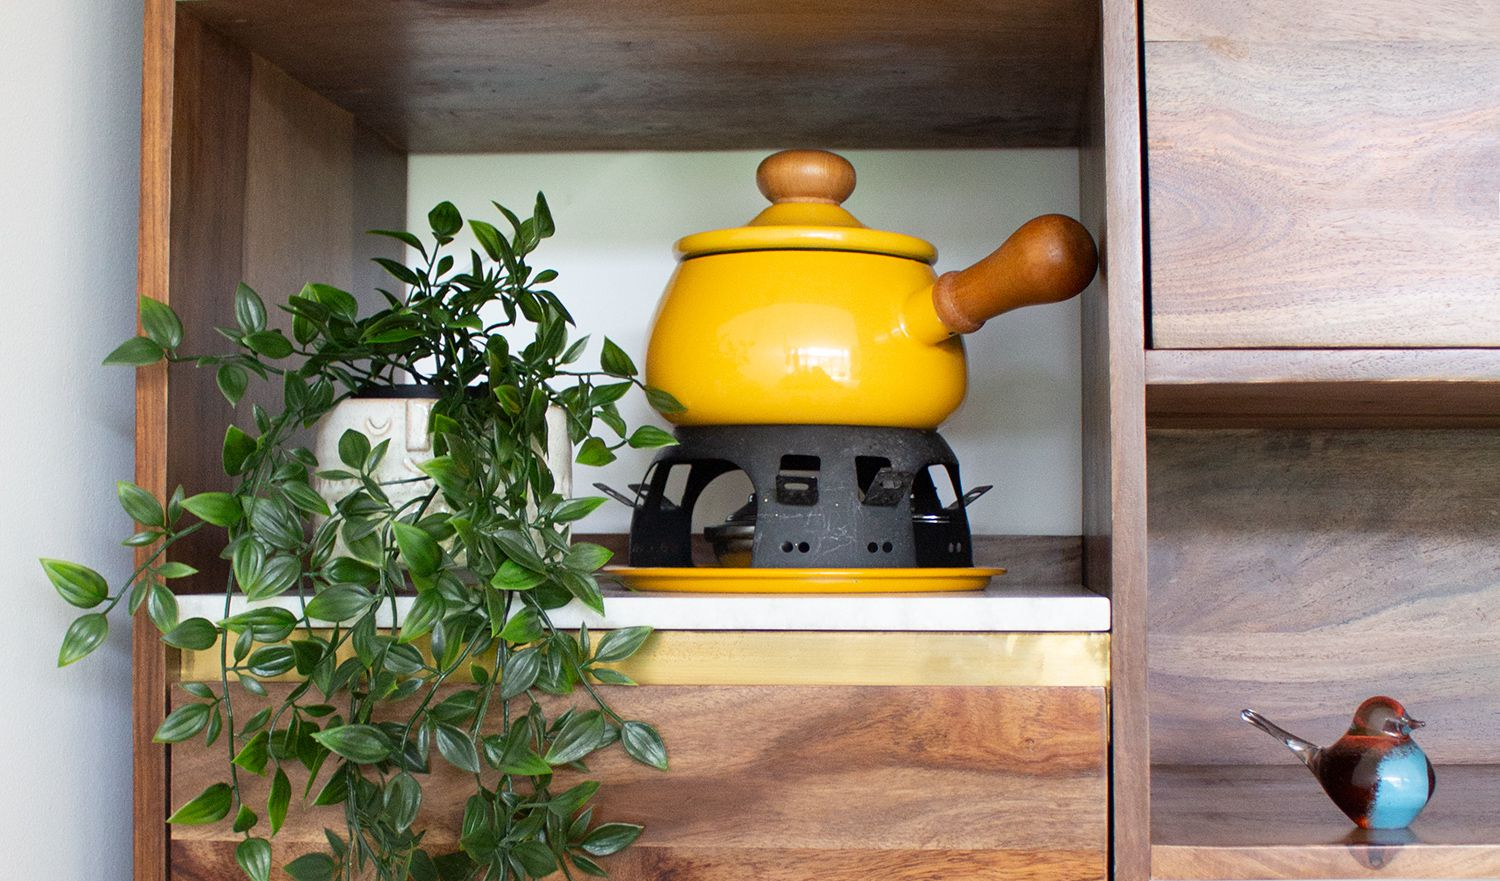 A close up of the walnut shelf unit, styled with plants and a yellow fondue set.